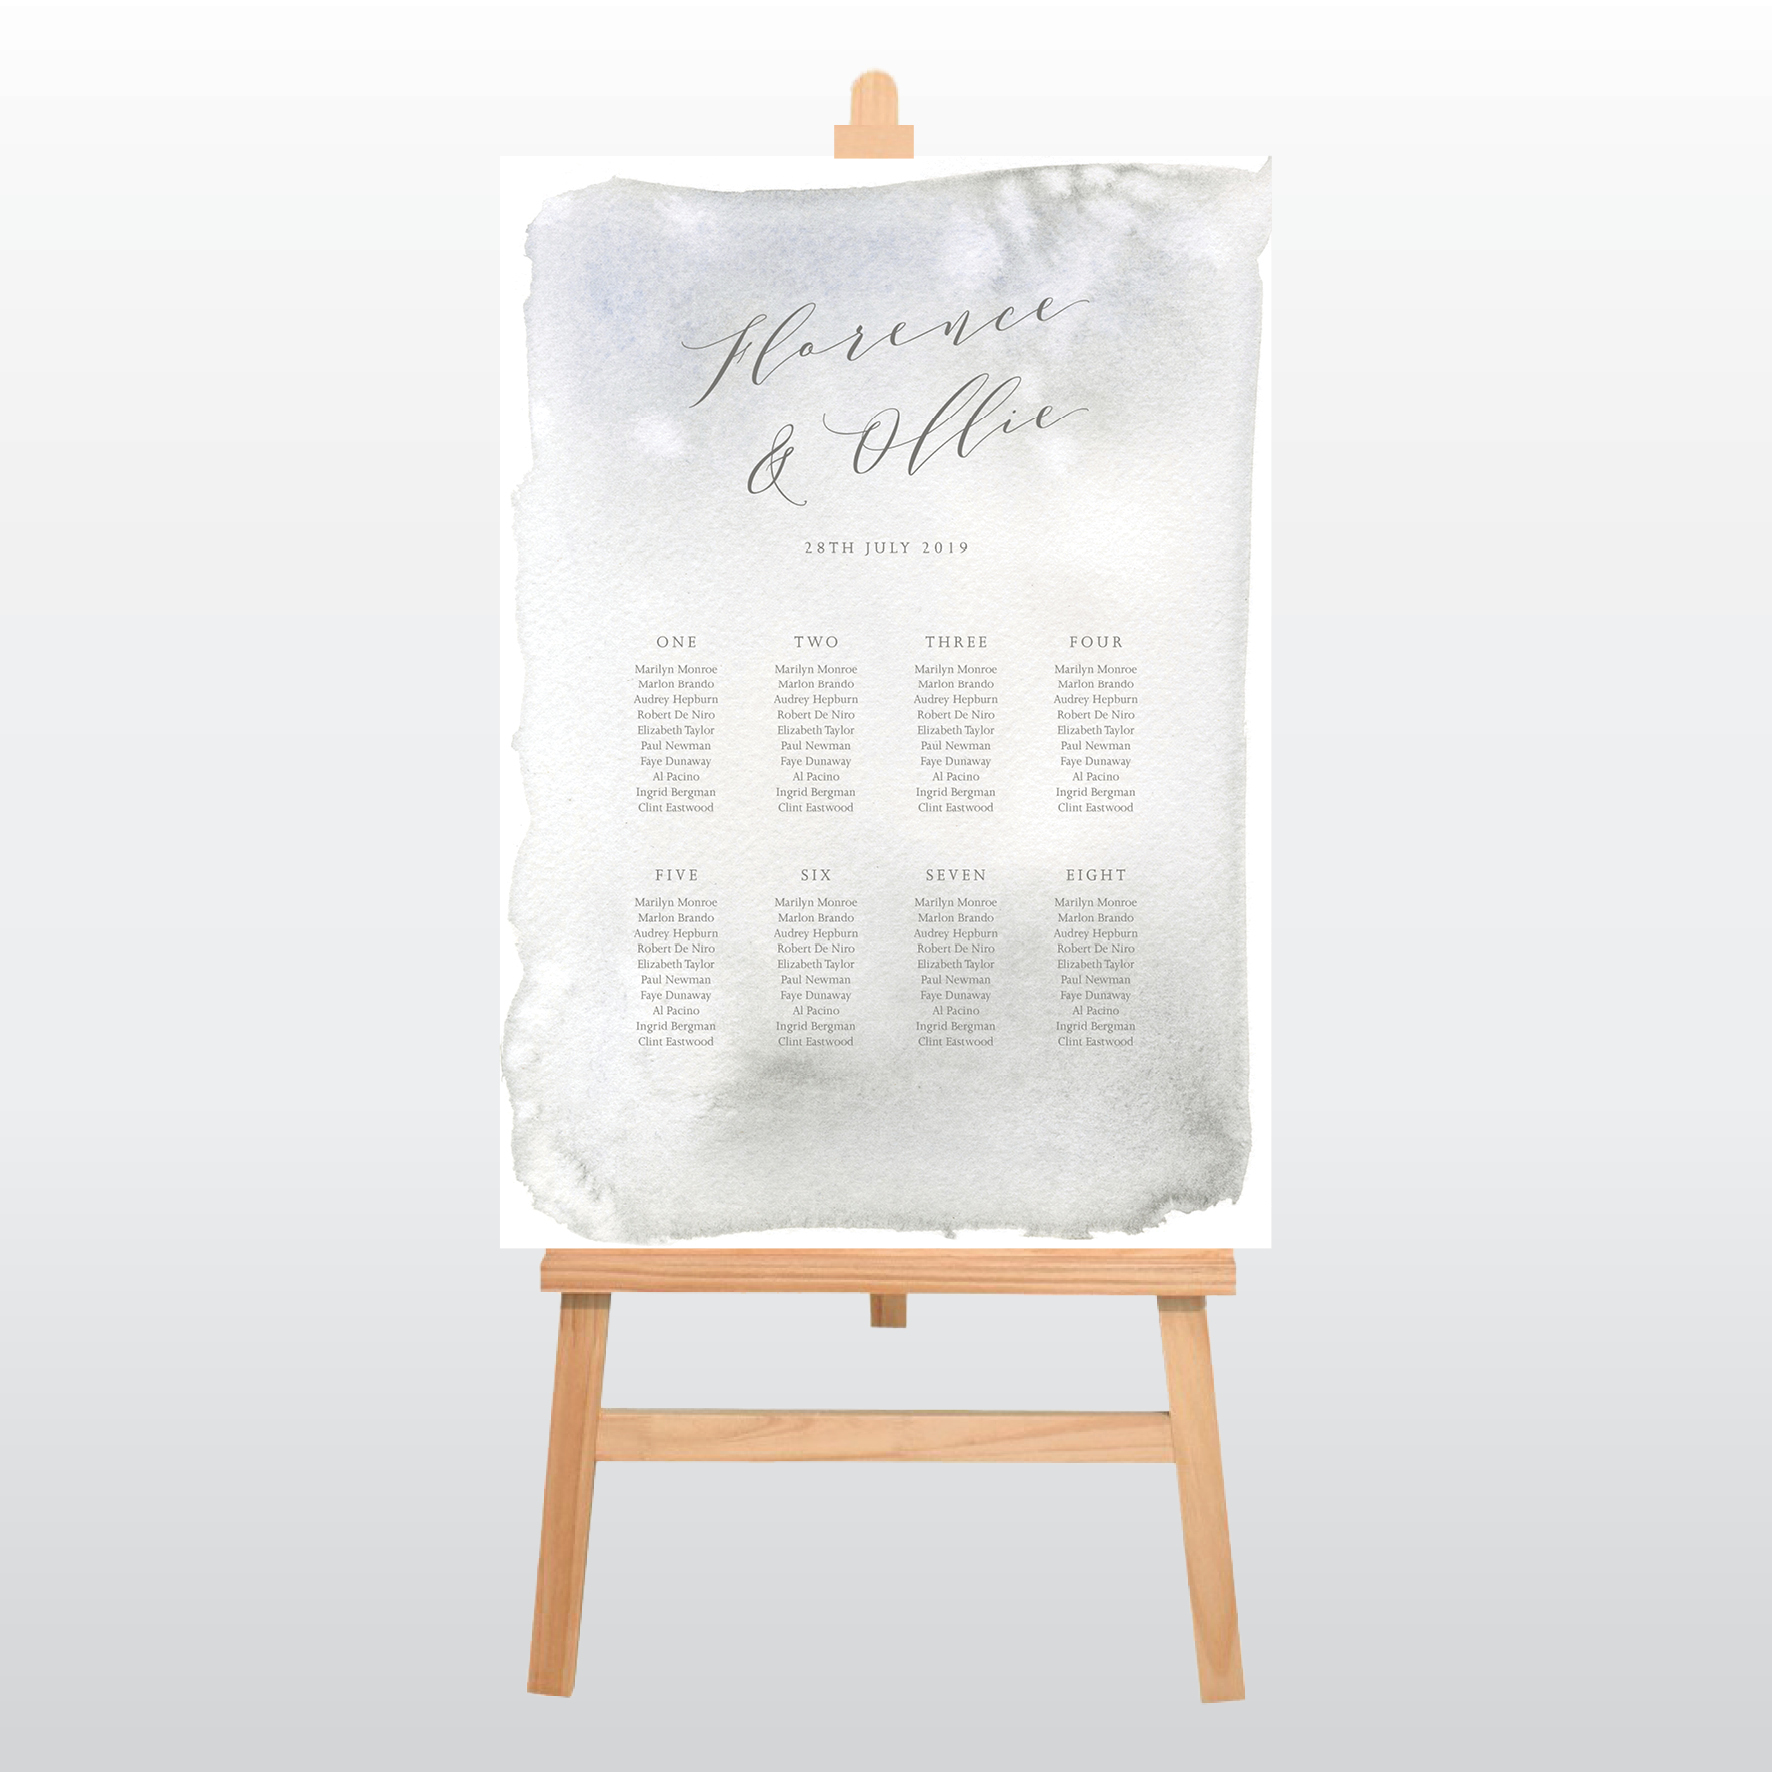 Feather Table Plan V1.jpg